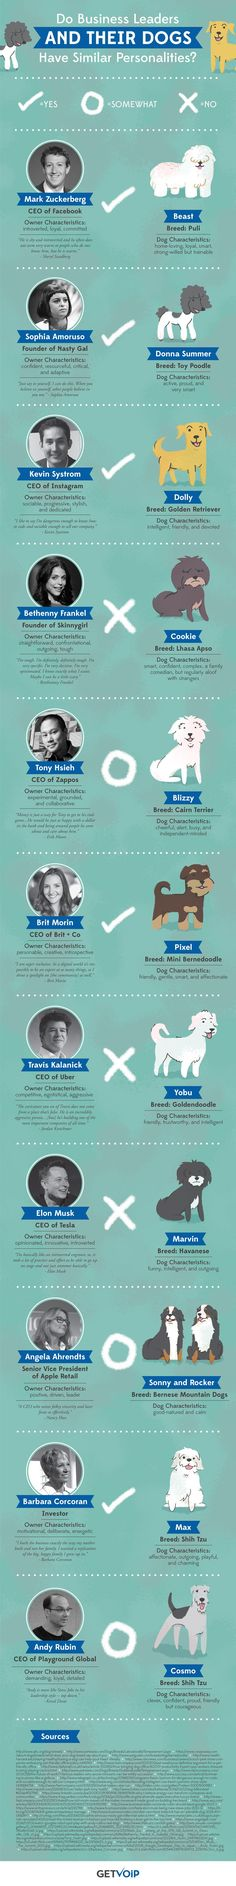 Do Business Leaders and Their Dogs Have Similar Personalities? #infographic #Dogs #Entrepreneur #Pets